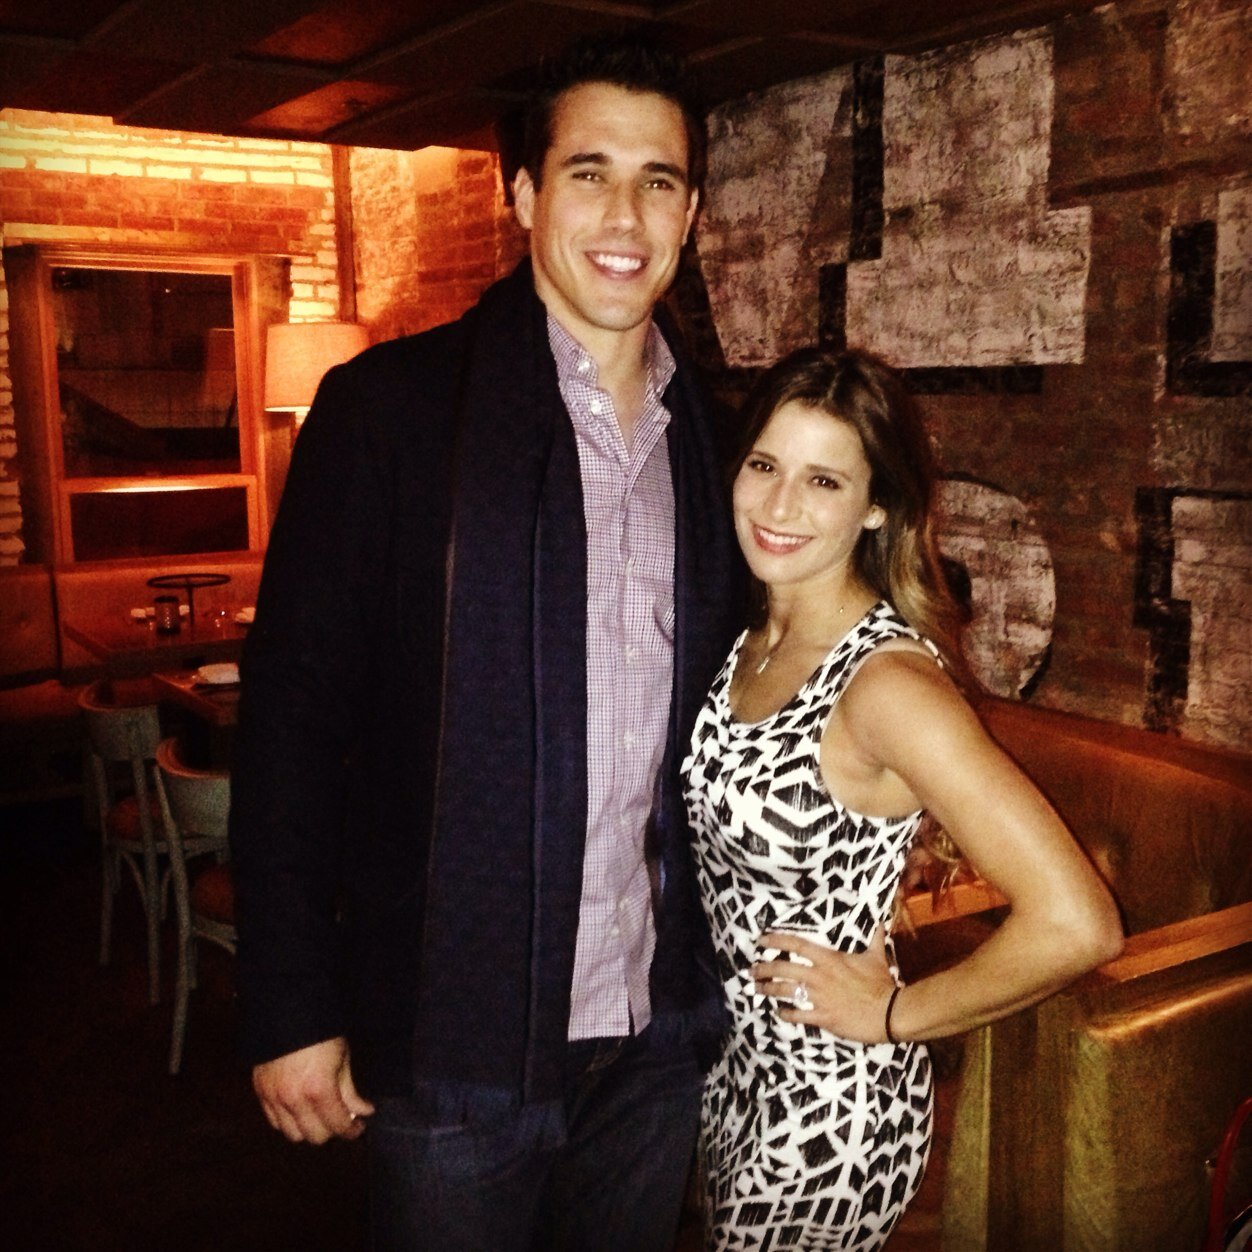 Who is brady quinn dating now